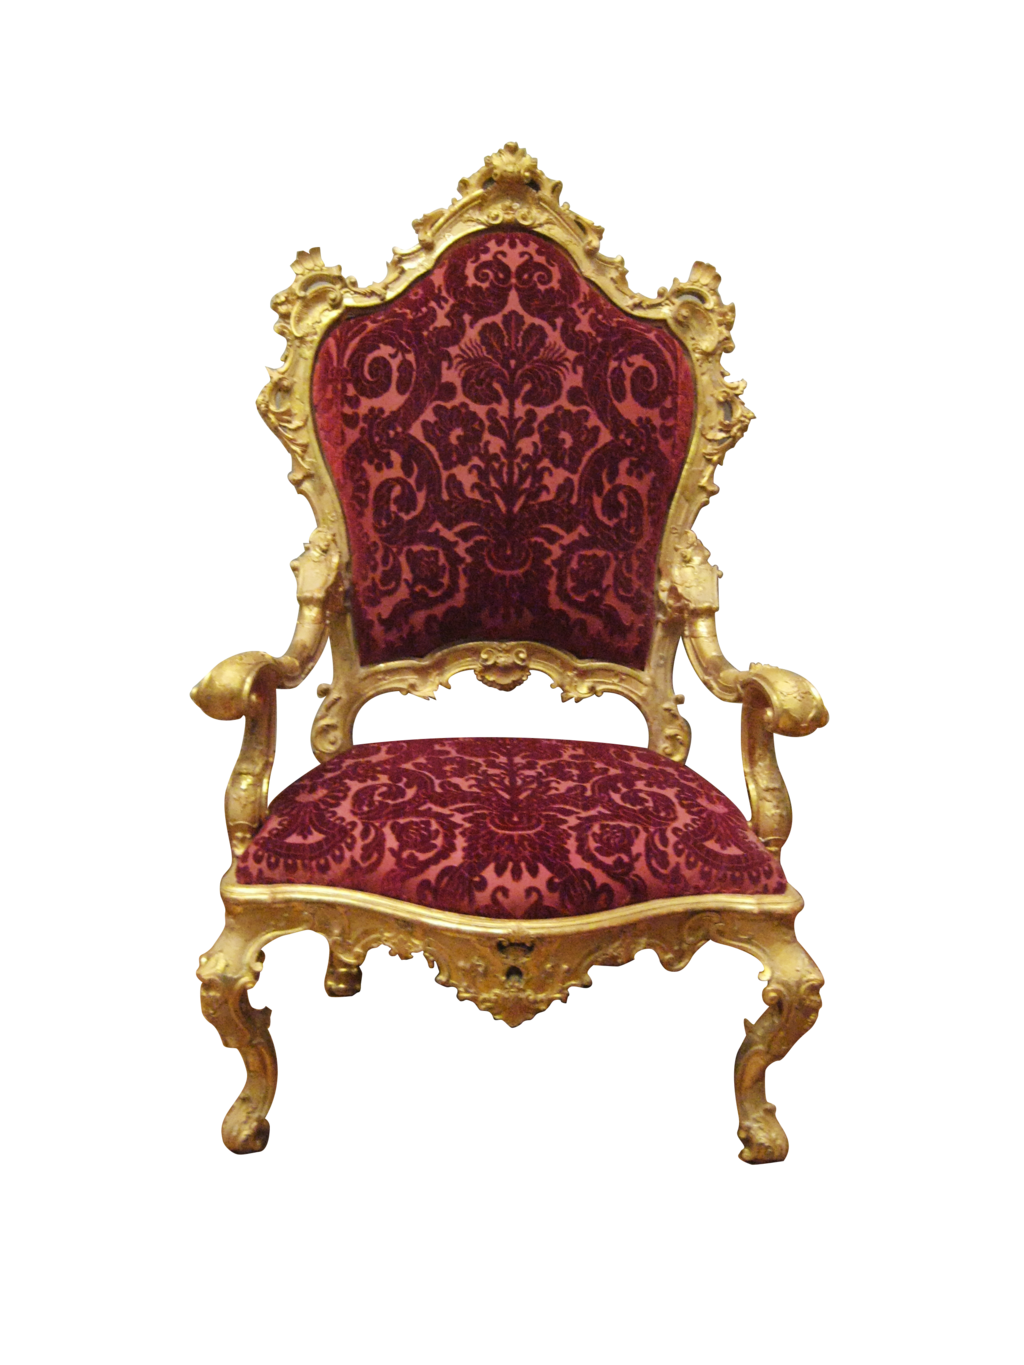 King chair png. Royal by duhbatista deviantart